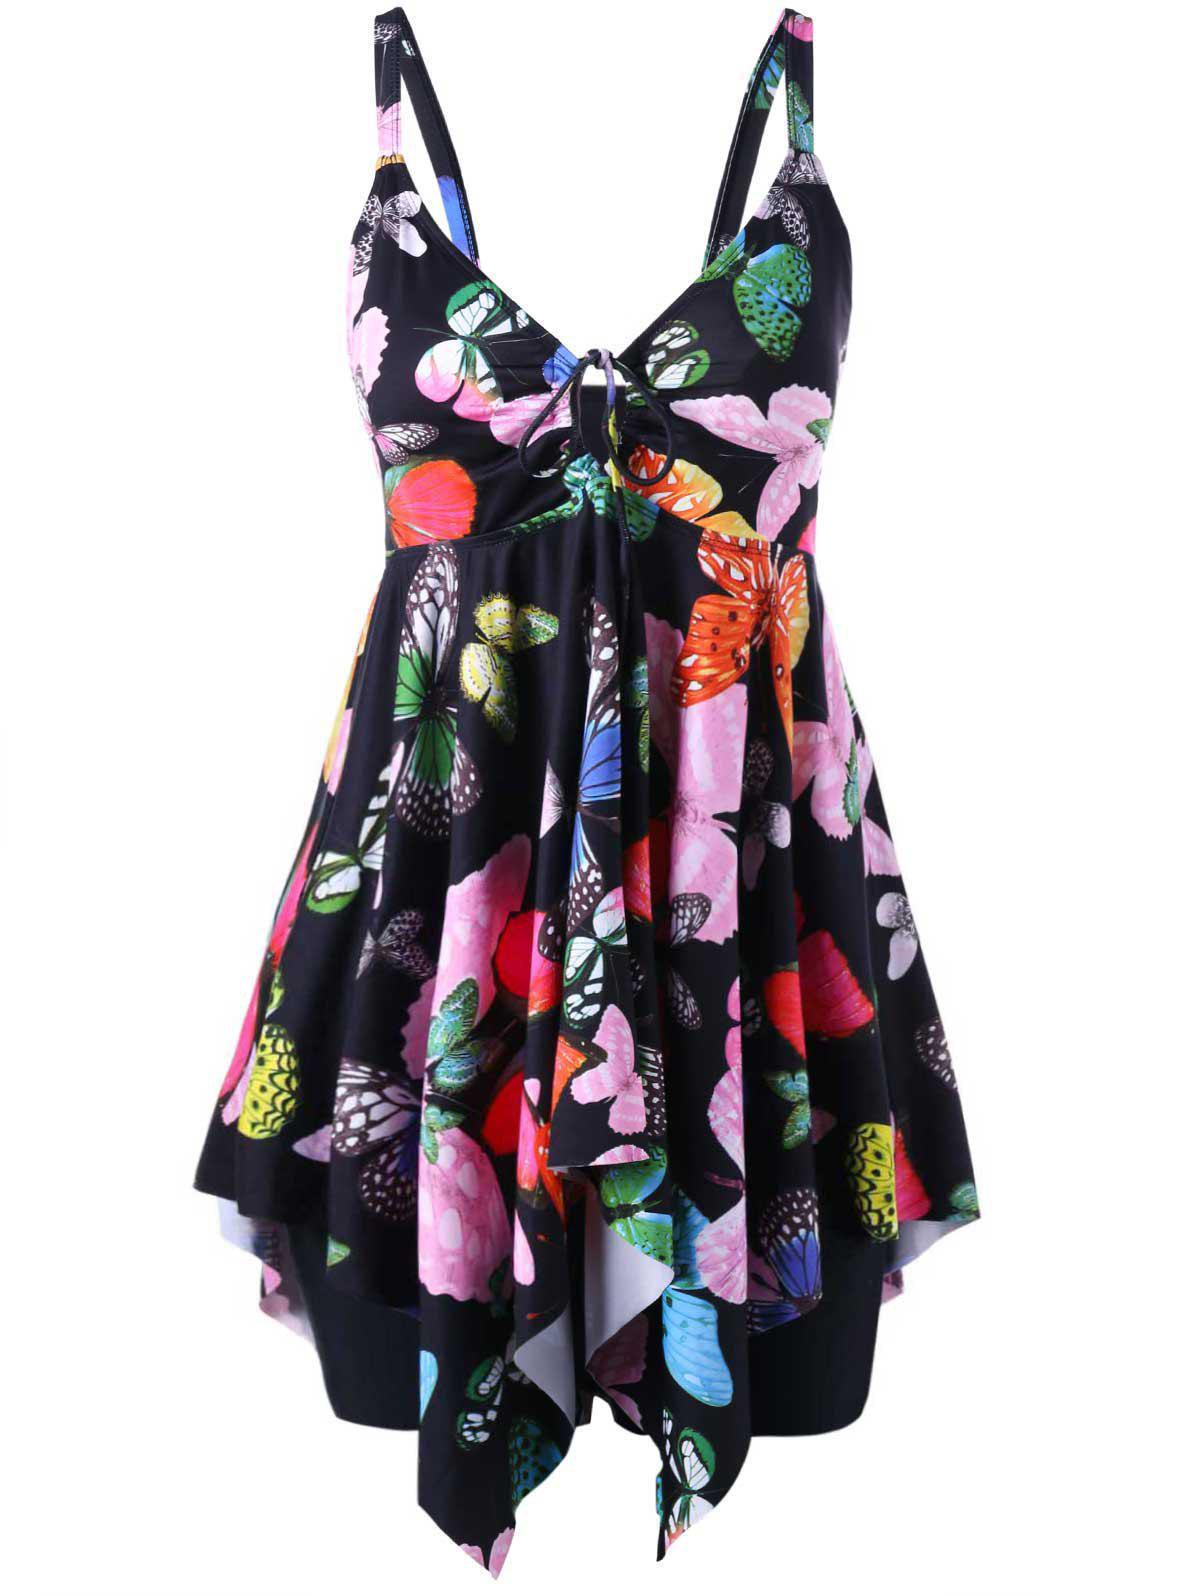 Butterfly Print Plus Size Handkerchief Tankini SetWOMEN<br><br>Size: 2XL; Color: BLACK; Gender: For Women; Swimwear Type: Tankini; Material: Polyester,Spandex; Pattern Type: Insect; Waist: High Waisted; Weight: 0.3000kg; Package Contents: 1 x Tank Top  1 x Panties;